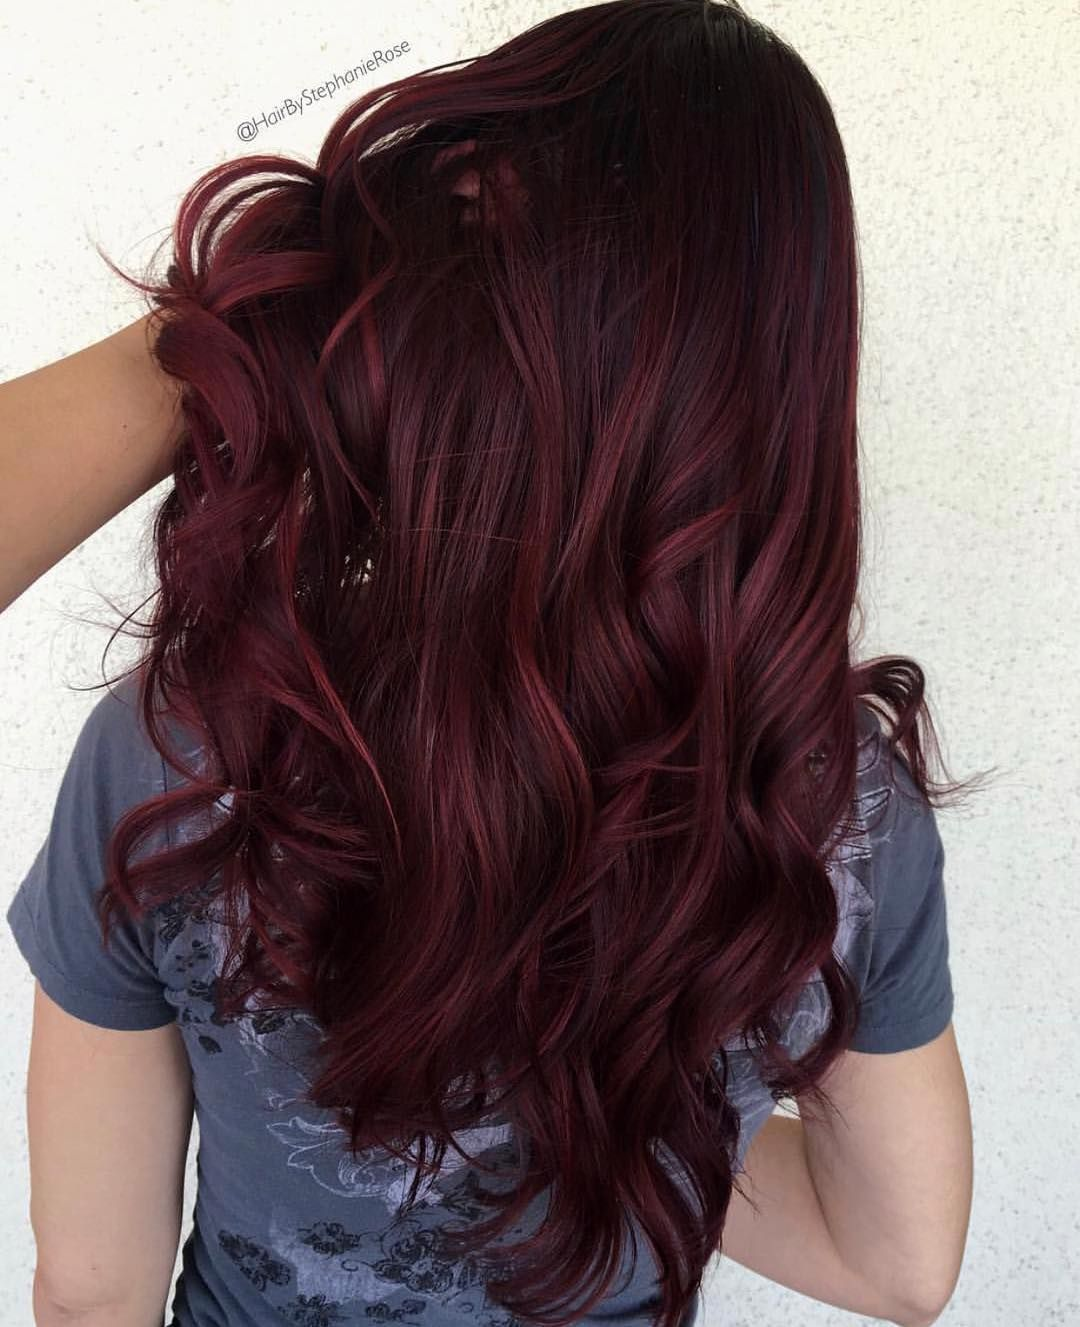 Pin By Feshfen On Glam Red Hair In